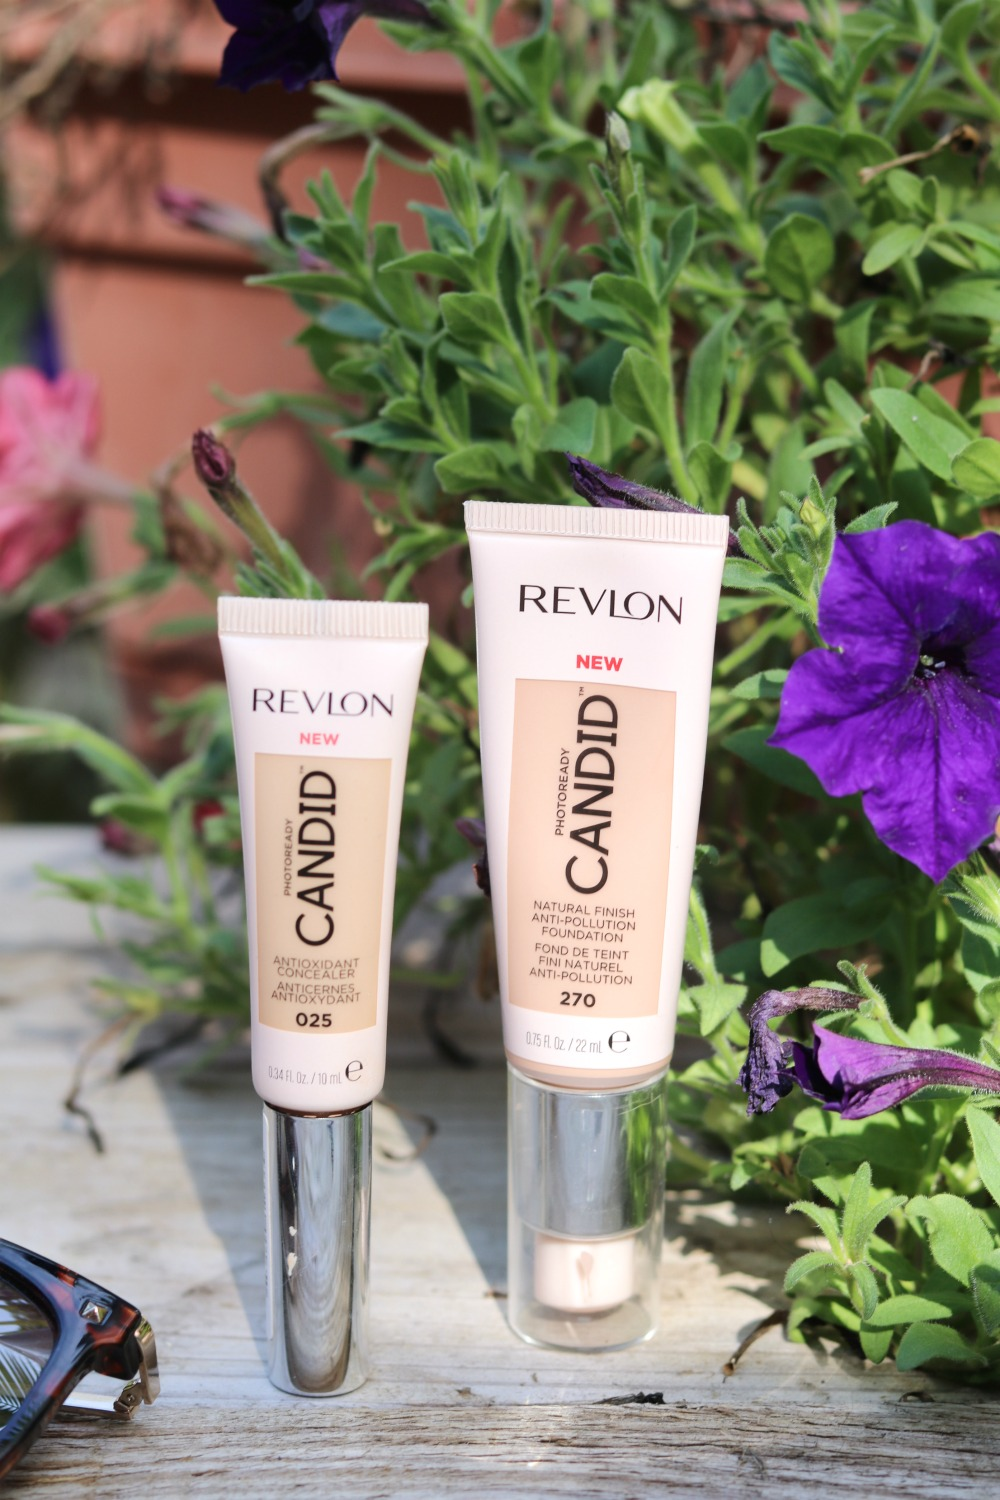 Revlon Candid Foundation and Concealer Review I DreaminLace.com #Makeup #DrugstoreMakeup #BeautyBlog